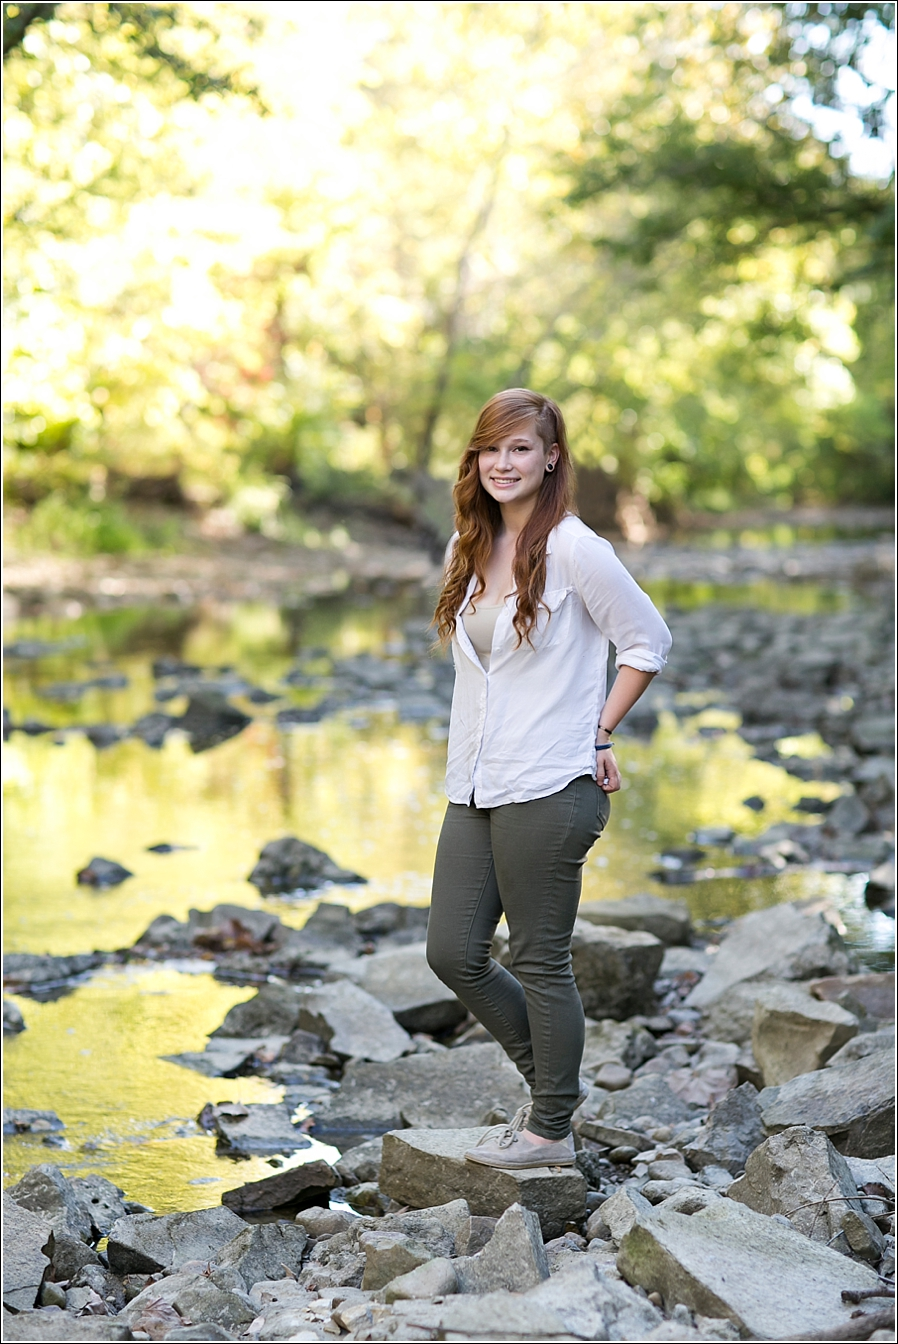 Chillicothe Ohio Senior Photographer